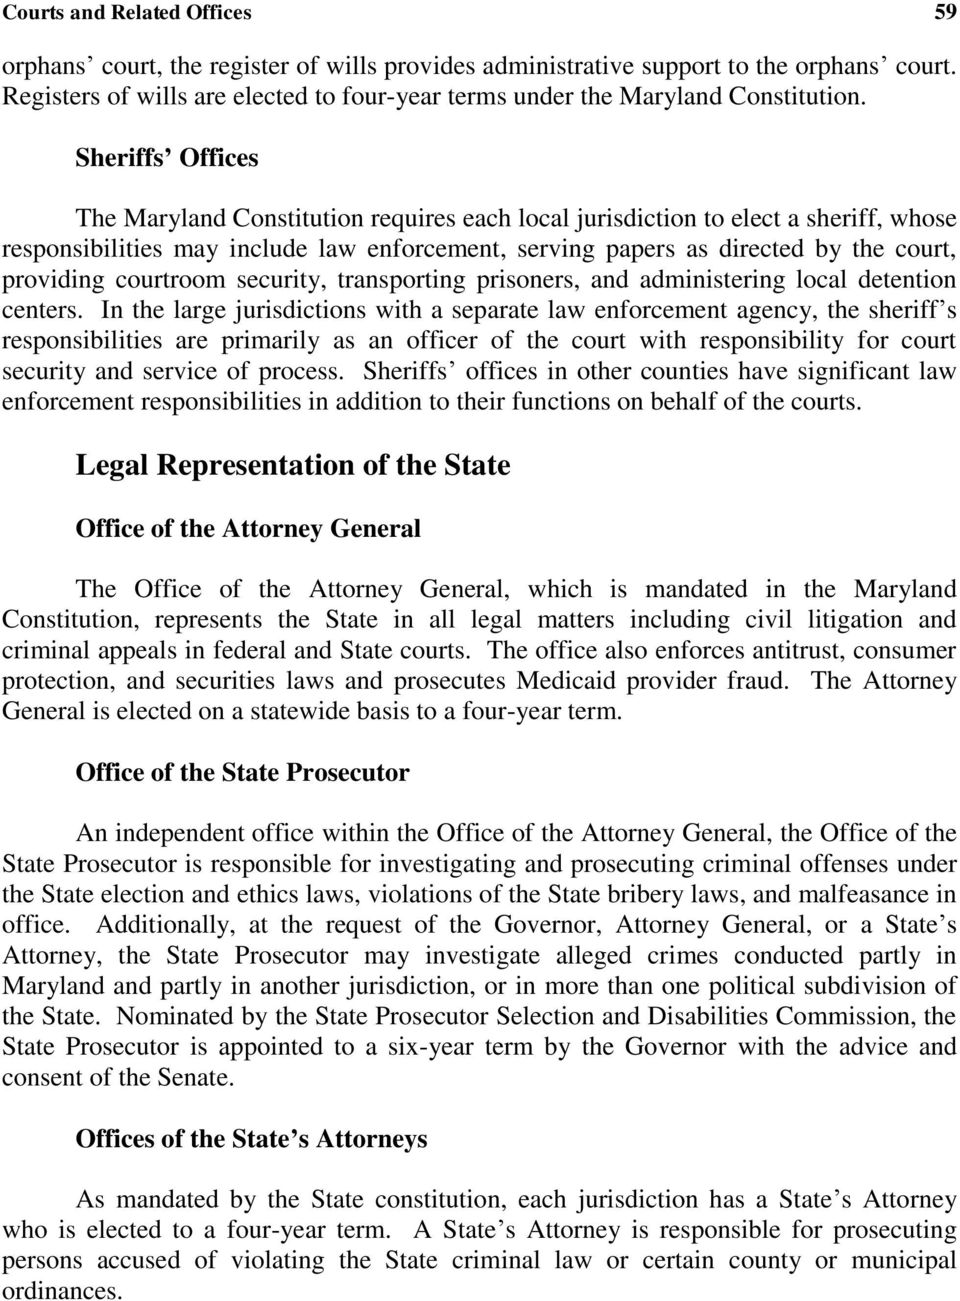 Sheriffs Offices The Maryland Constitution requires each local jurisdiction to elect a sheriff, whose responsibilities may include law enforcement, serving papers as directed by the court, providing